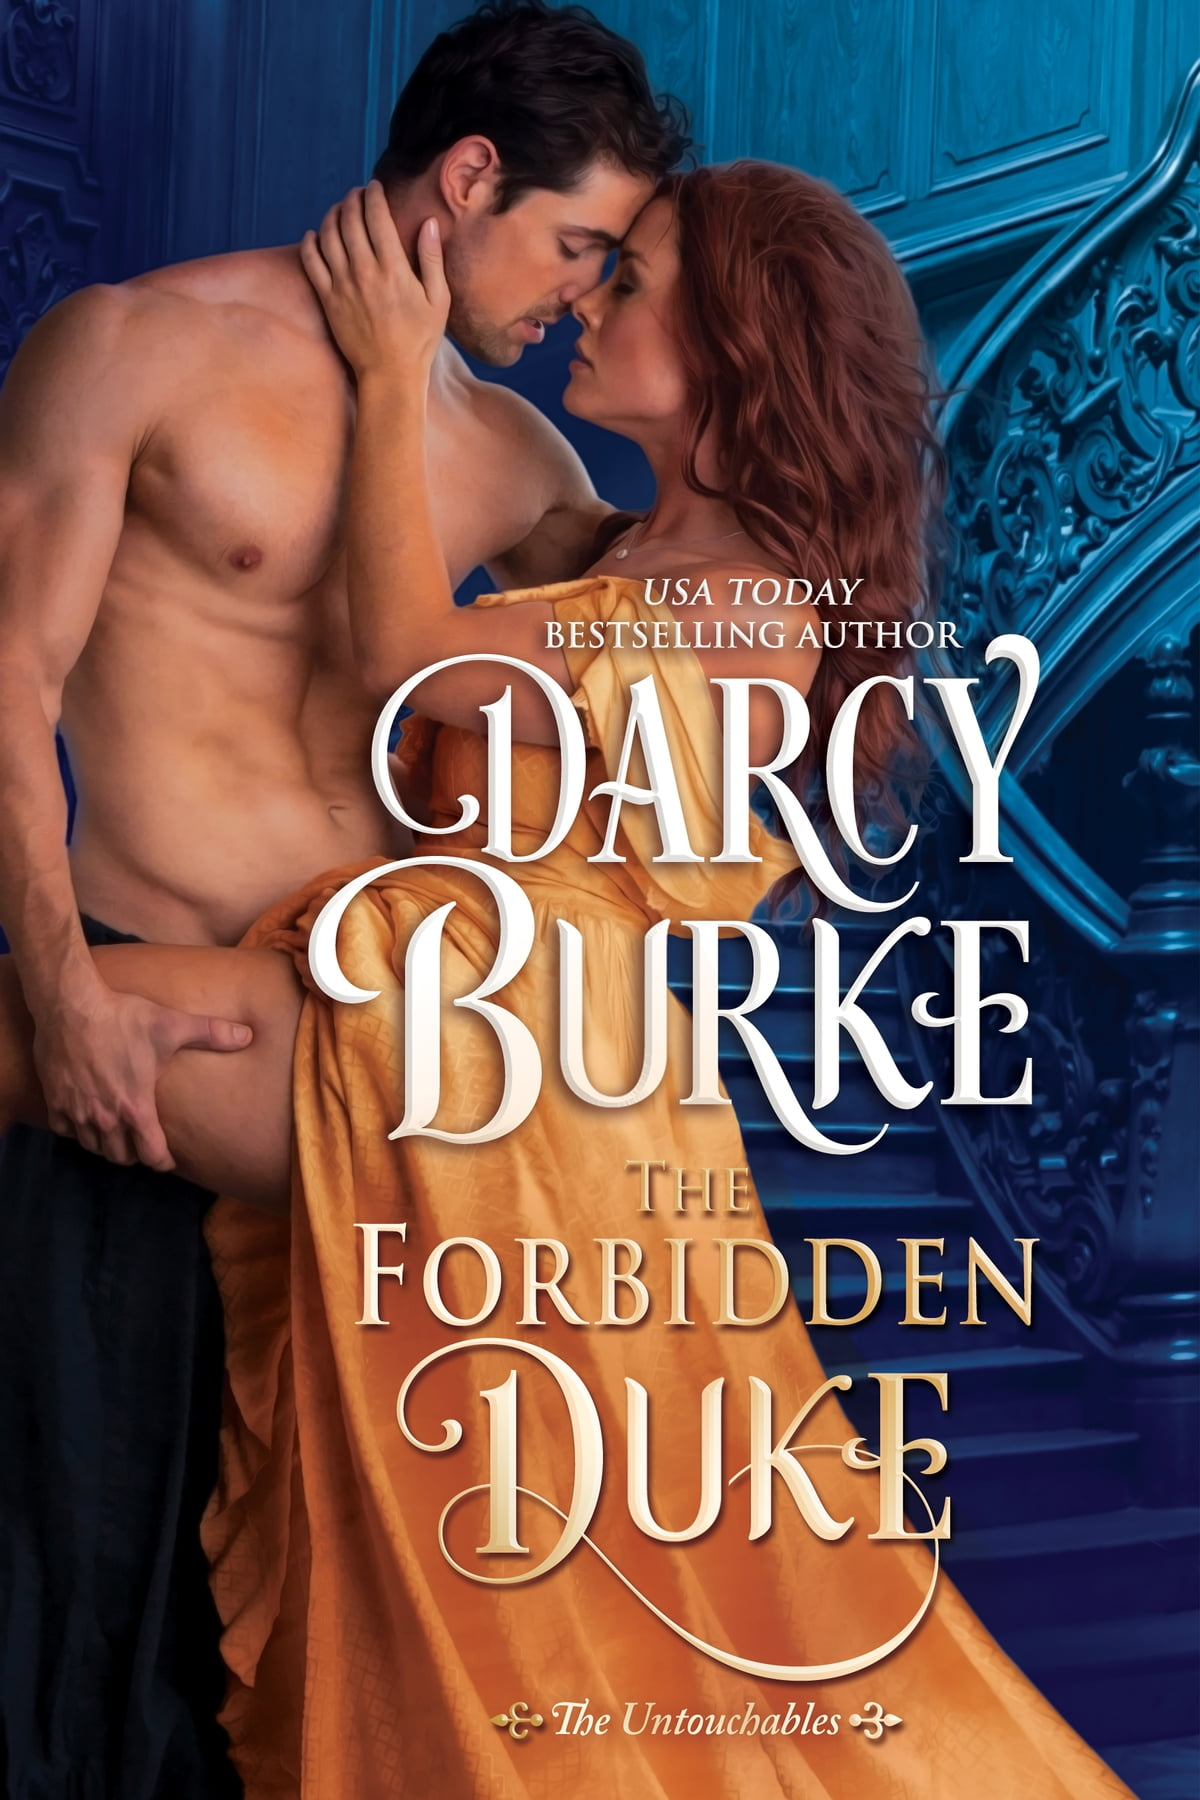 The reluctant duchess ebook by sharon cullen 9781101883648 the forbidden duke ebook by darcy burke fandeluxe PDF